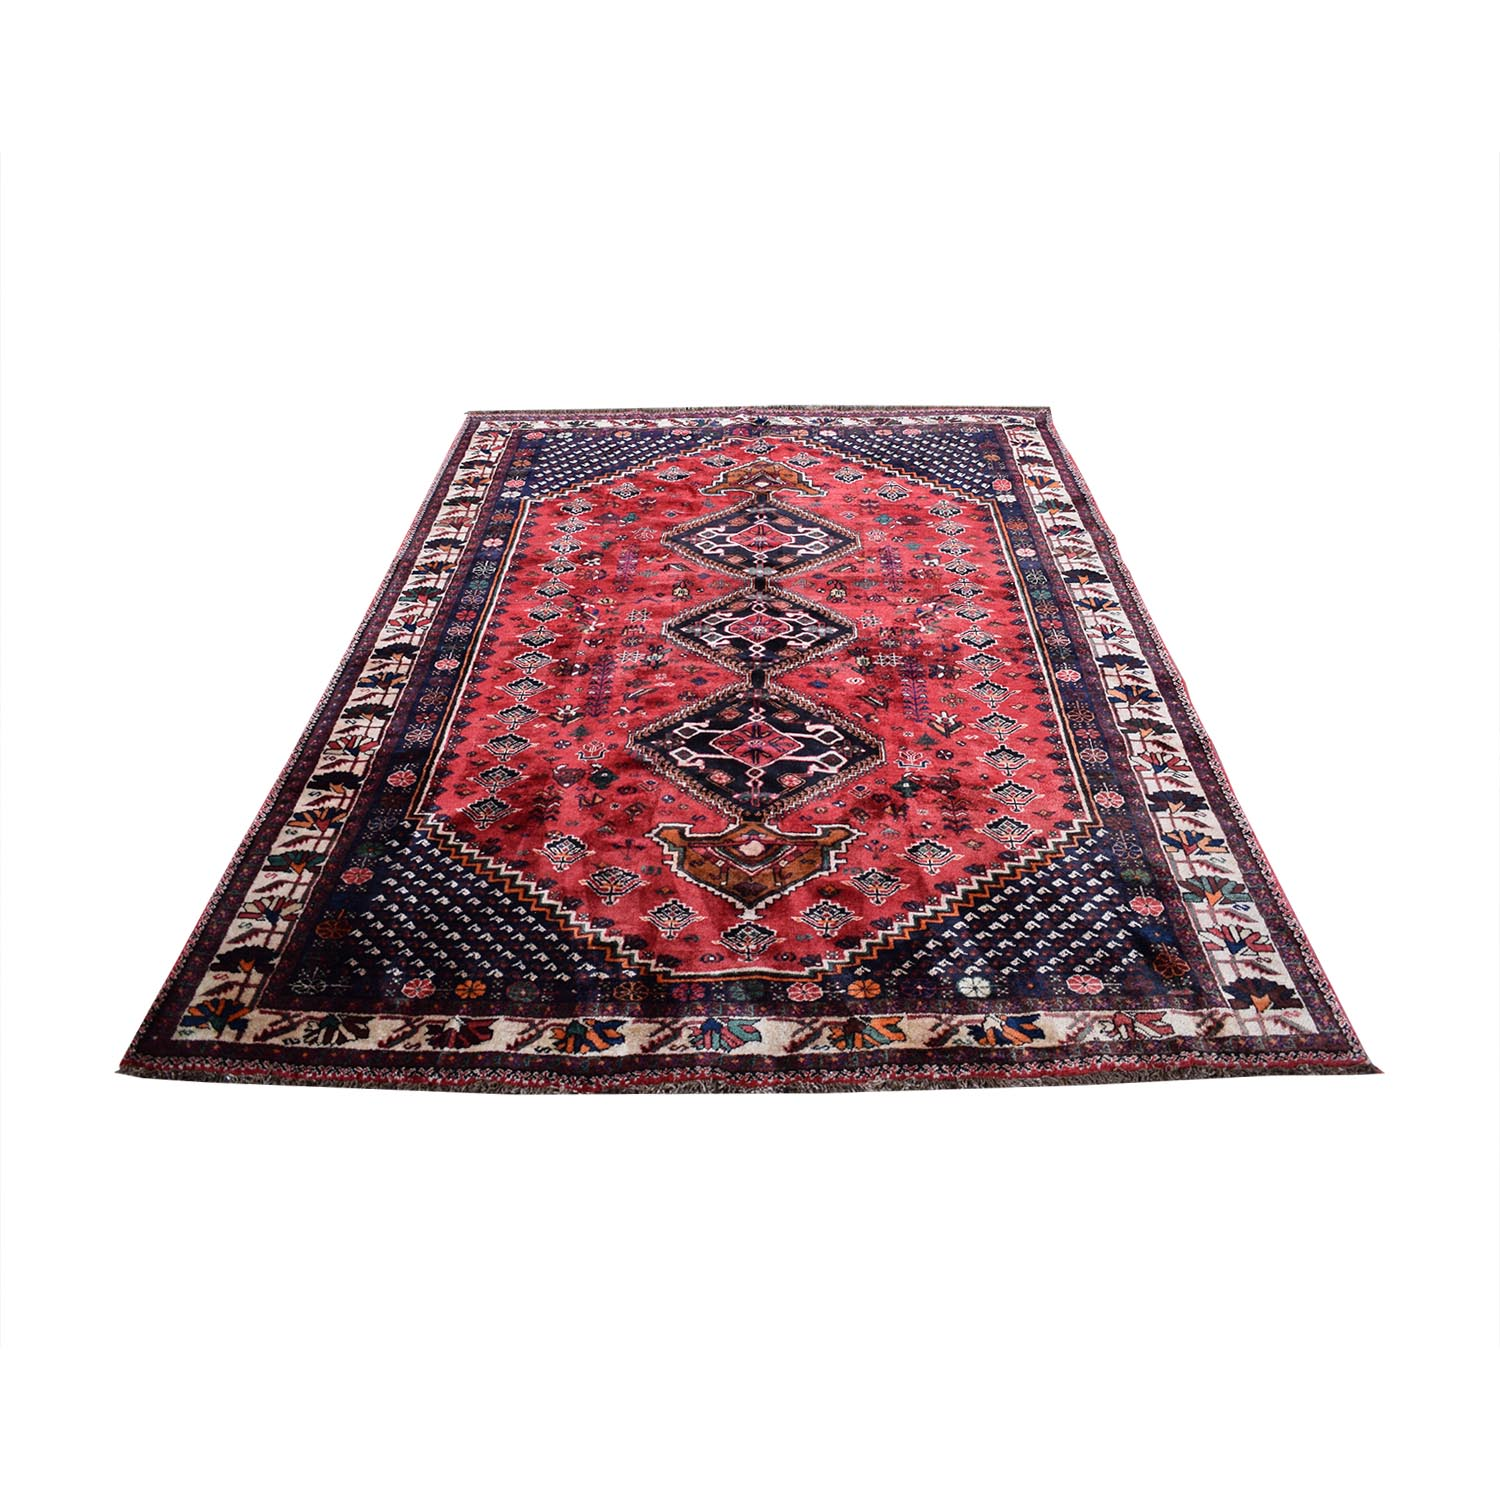 Hand Woven Persian Rug dimensions